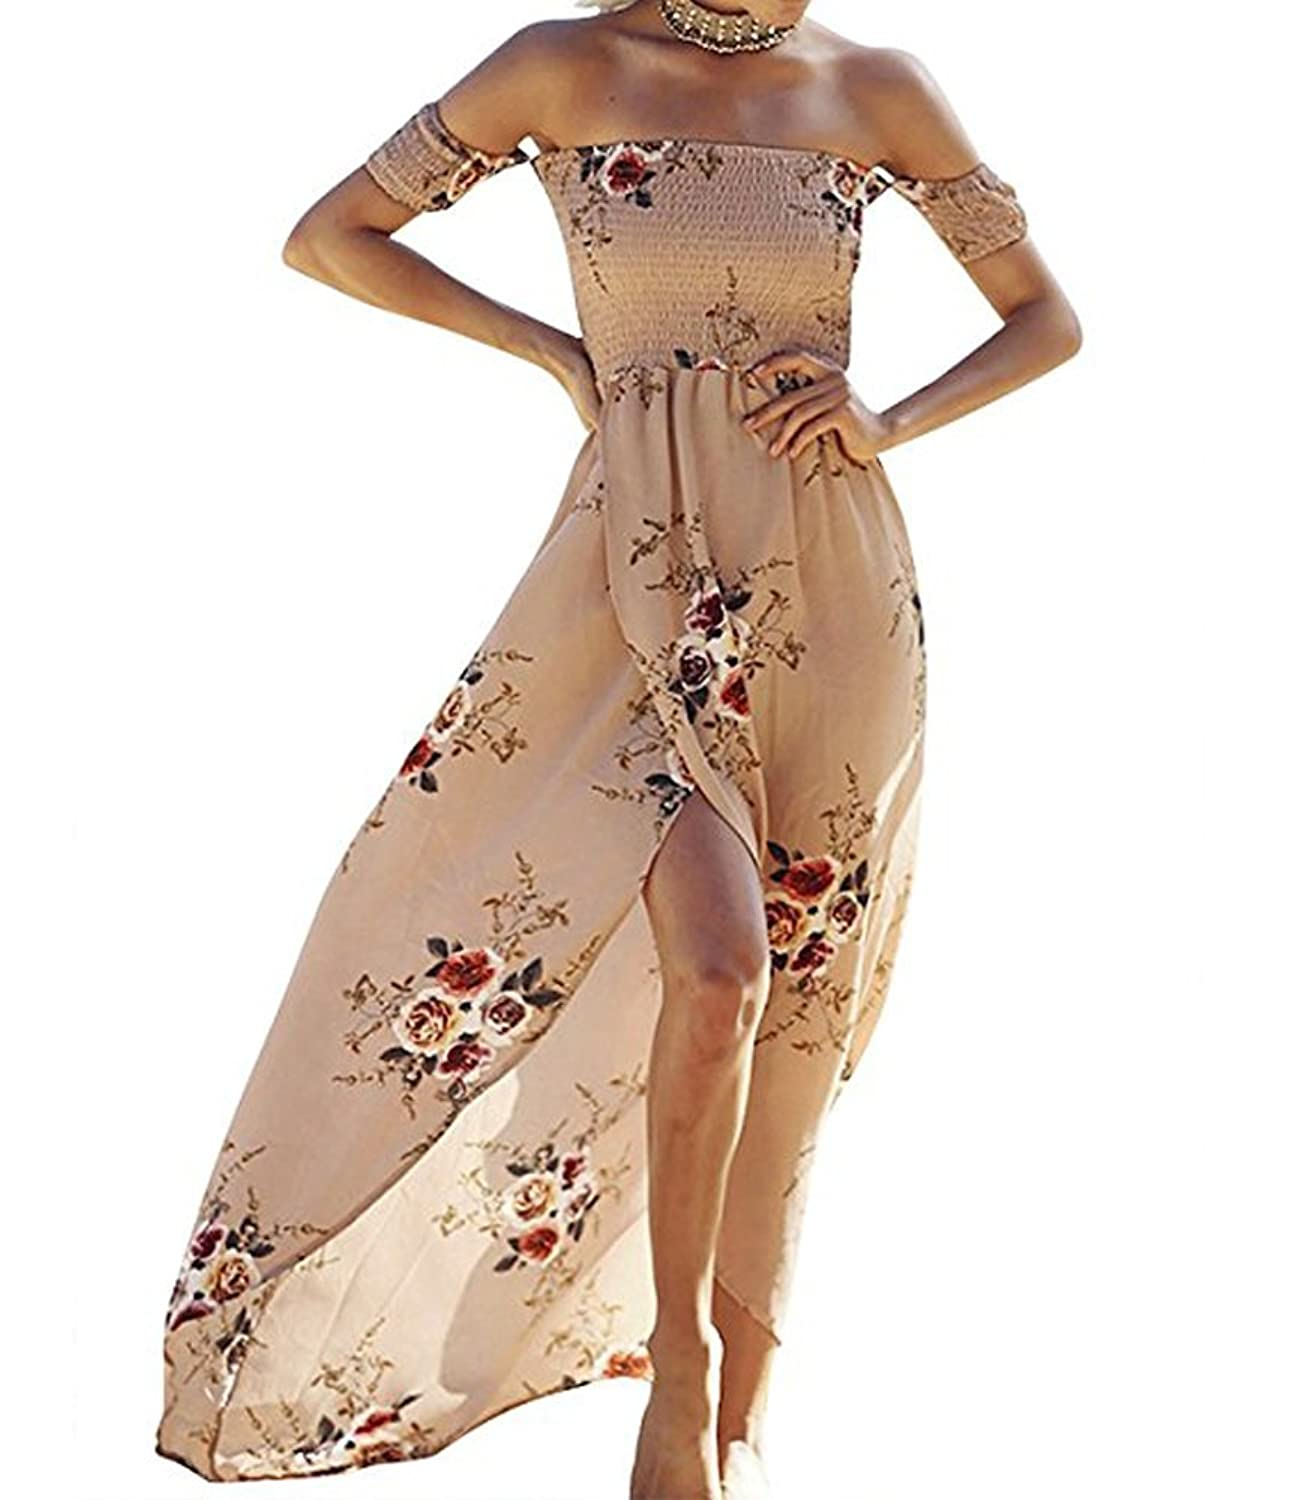 7fc2bd4d83a1 Material:Polyester +Chiffon Season:Spring ,Summer Print:Floral Flower Print  Neckline:Off the shoulder. Dress length:Long maxi length